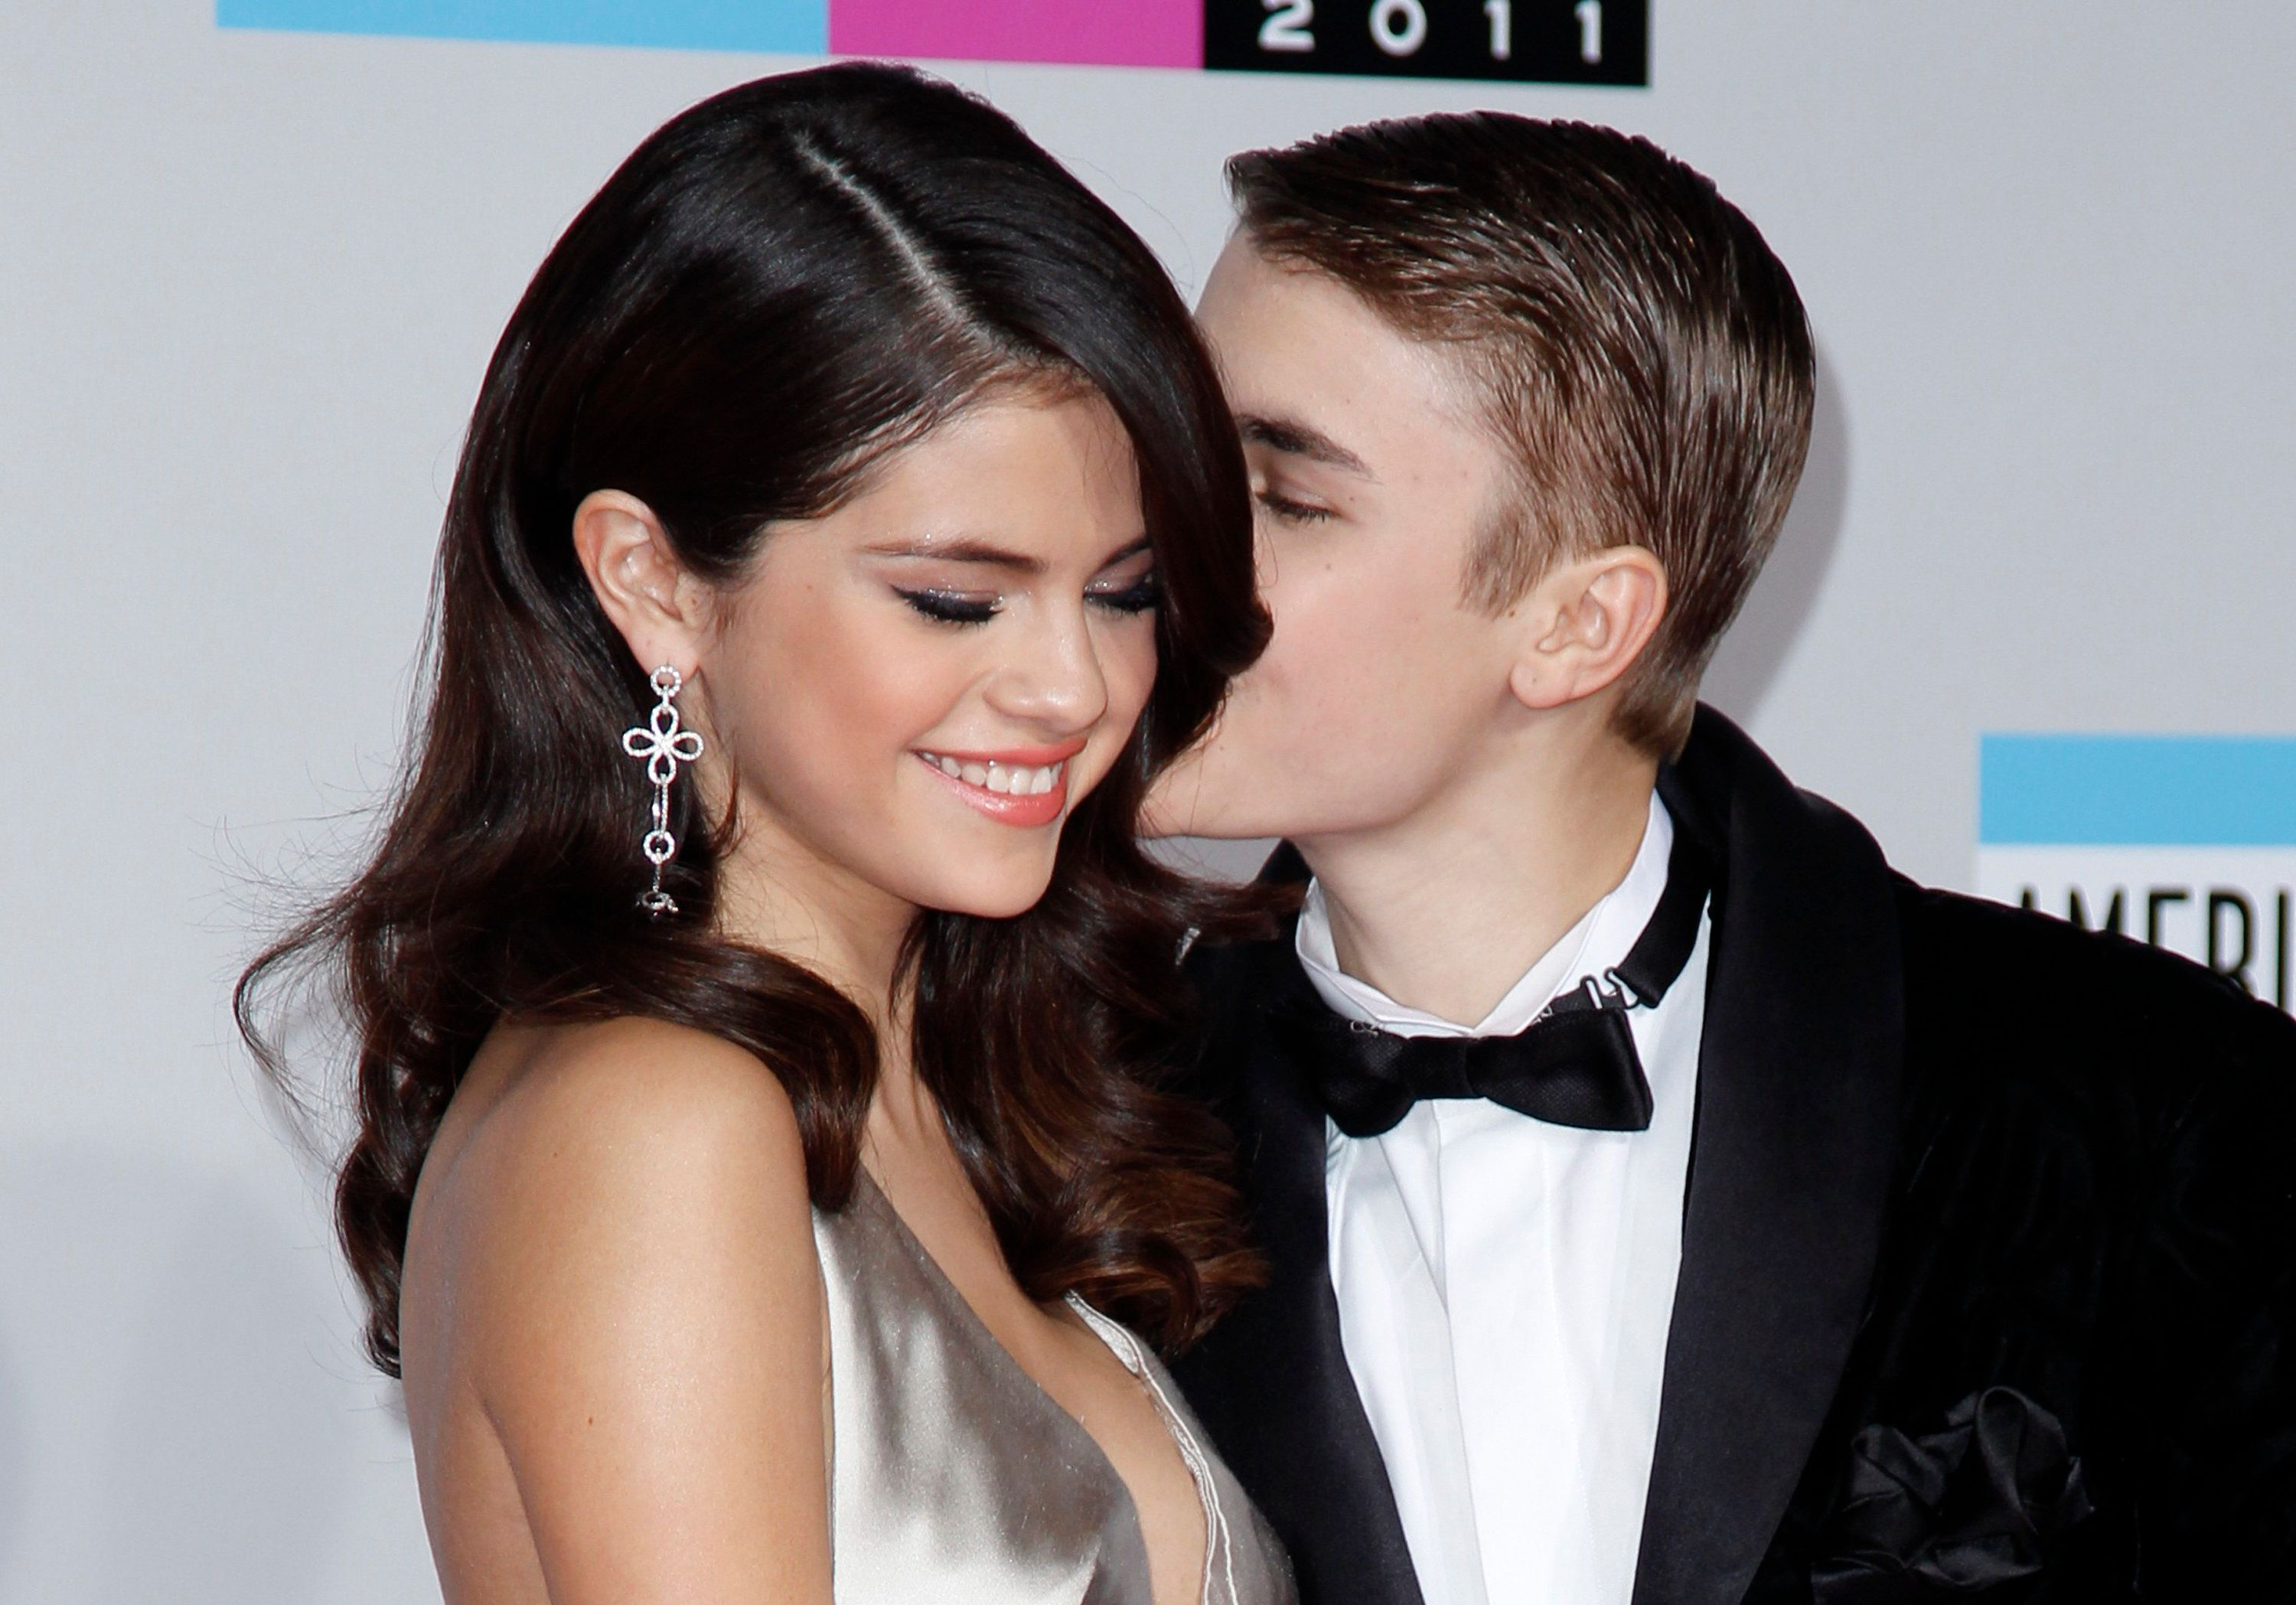 Justin Bieber and Selena Gomez at the American Music Awards in 2011.